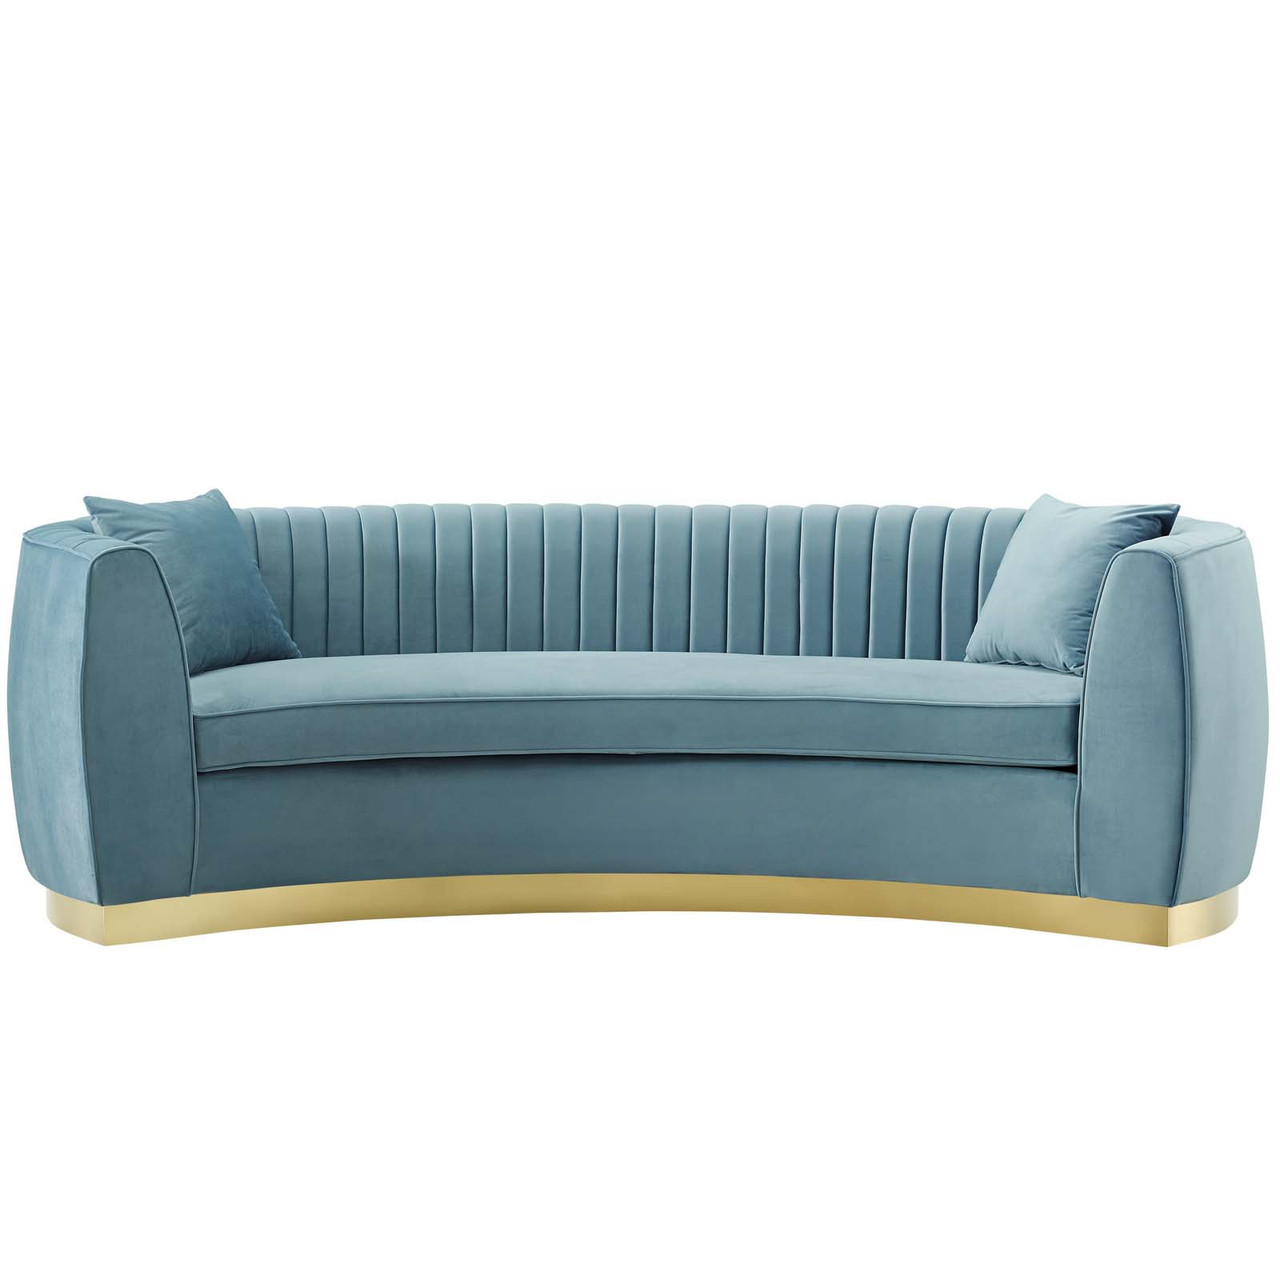 Picture of: Enthusiastic Vertical Channel Tufted Curved Performance Velvet Sofa Velvet Fabric Metal Steel Light Blue 17356 House Bound